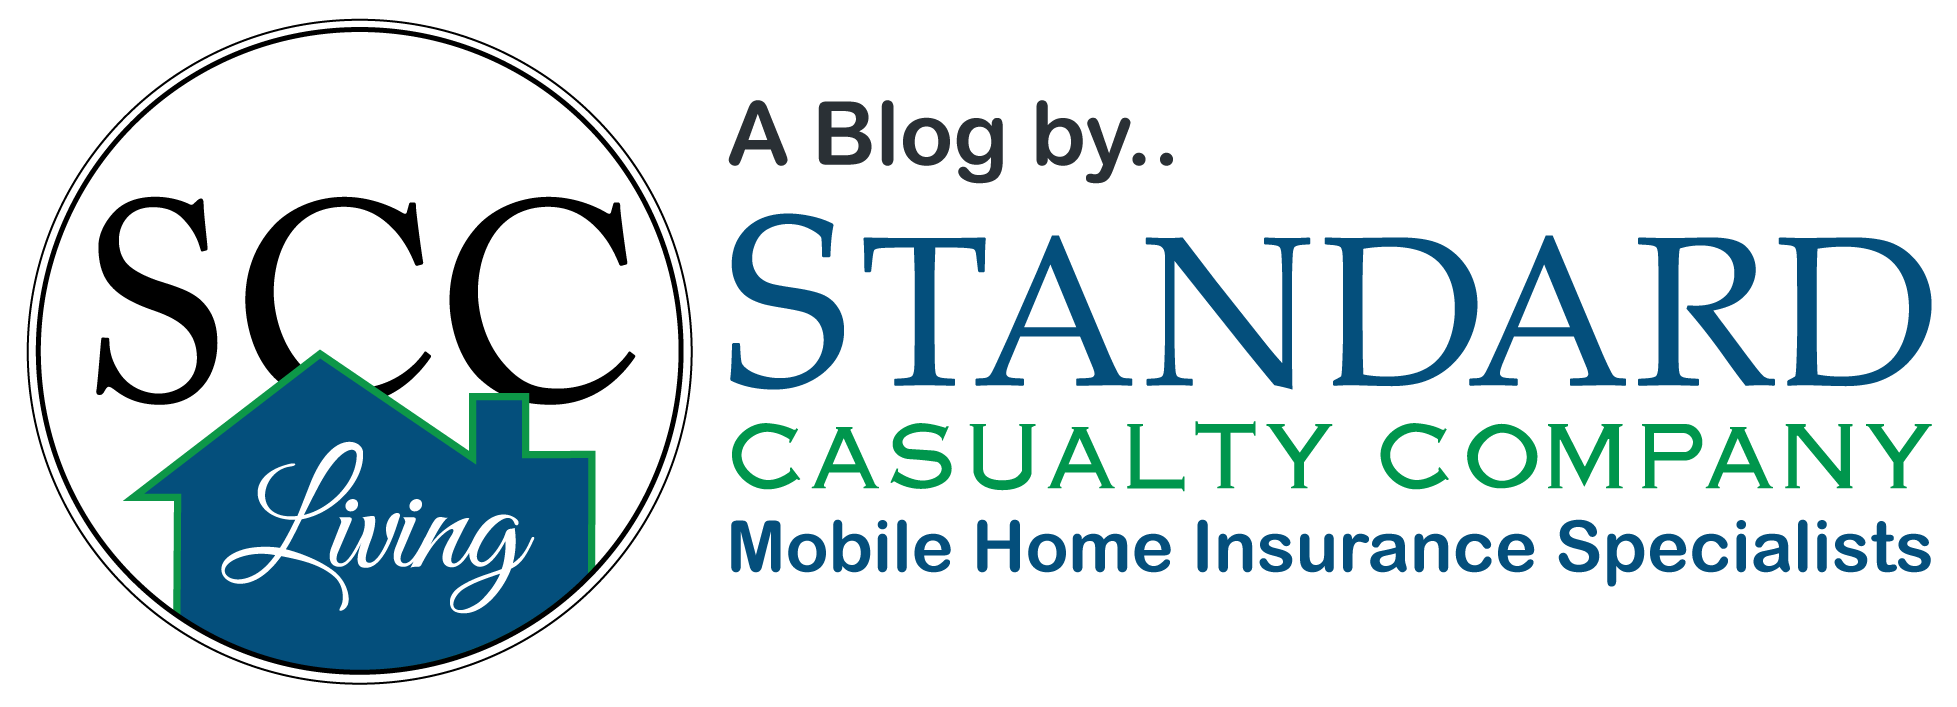 SCC Living. A blog by Standard Casualty Company. Your Mobile Home Specialists.